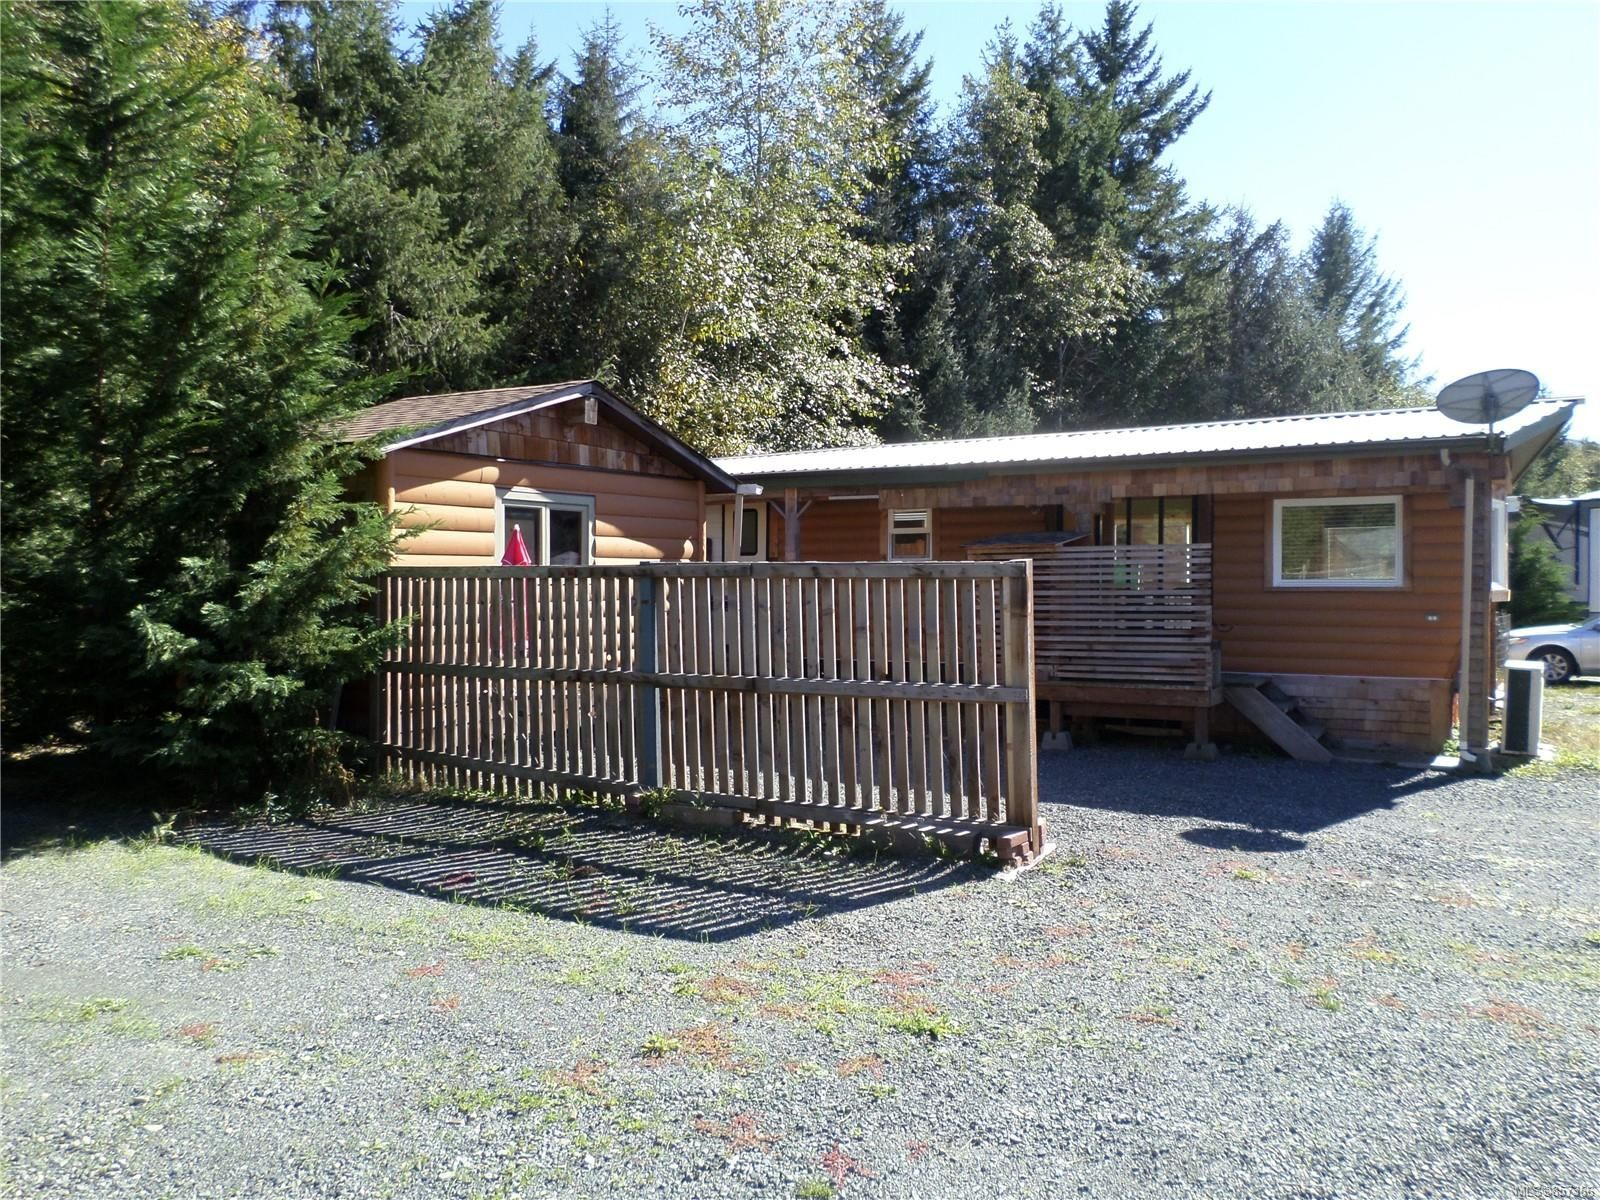 Photo 12: Photos: 1747 Nahmint Rd in : PQ Qualicum North Mixed Use for sale (Parksville/Qualicum)  : MLS®# 857366